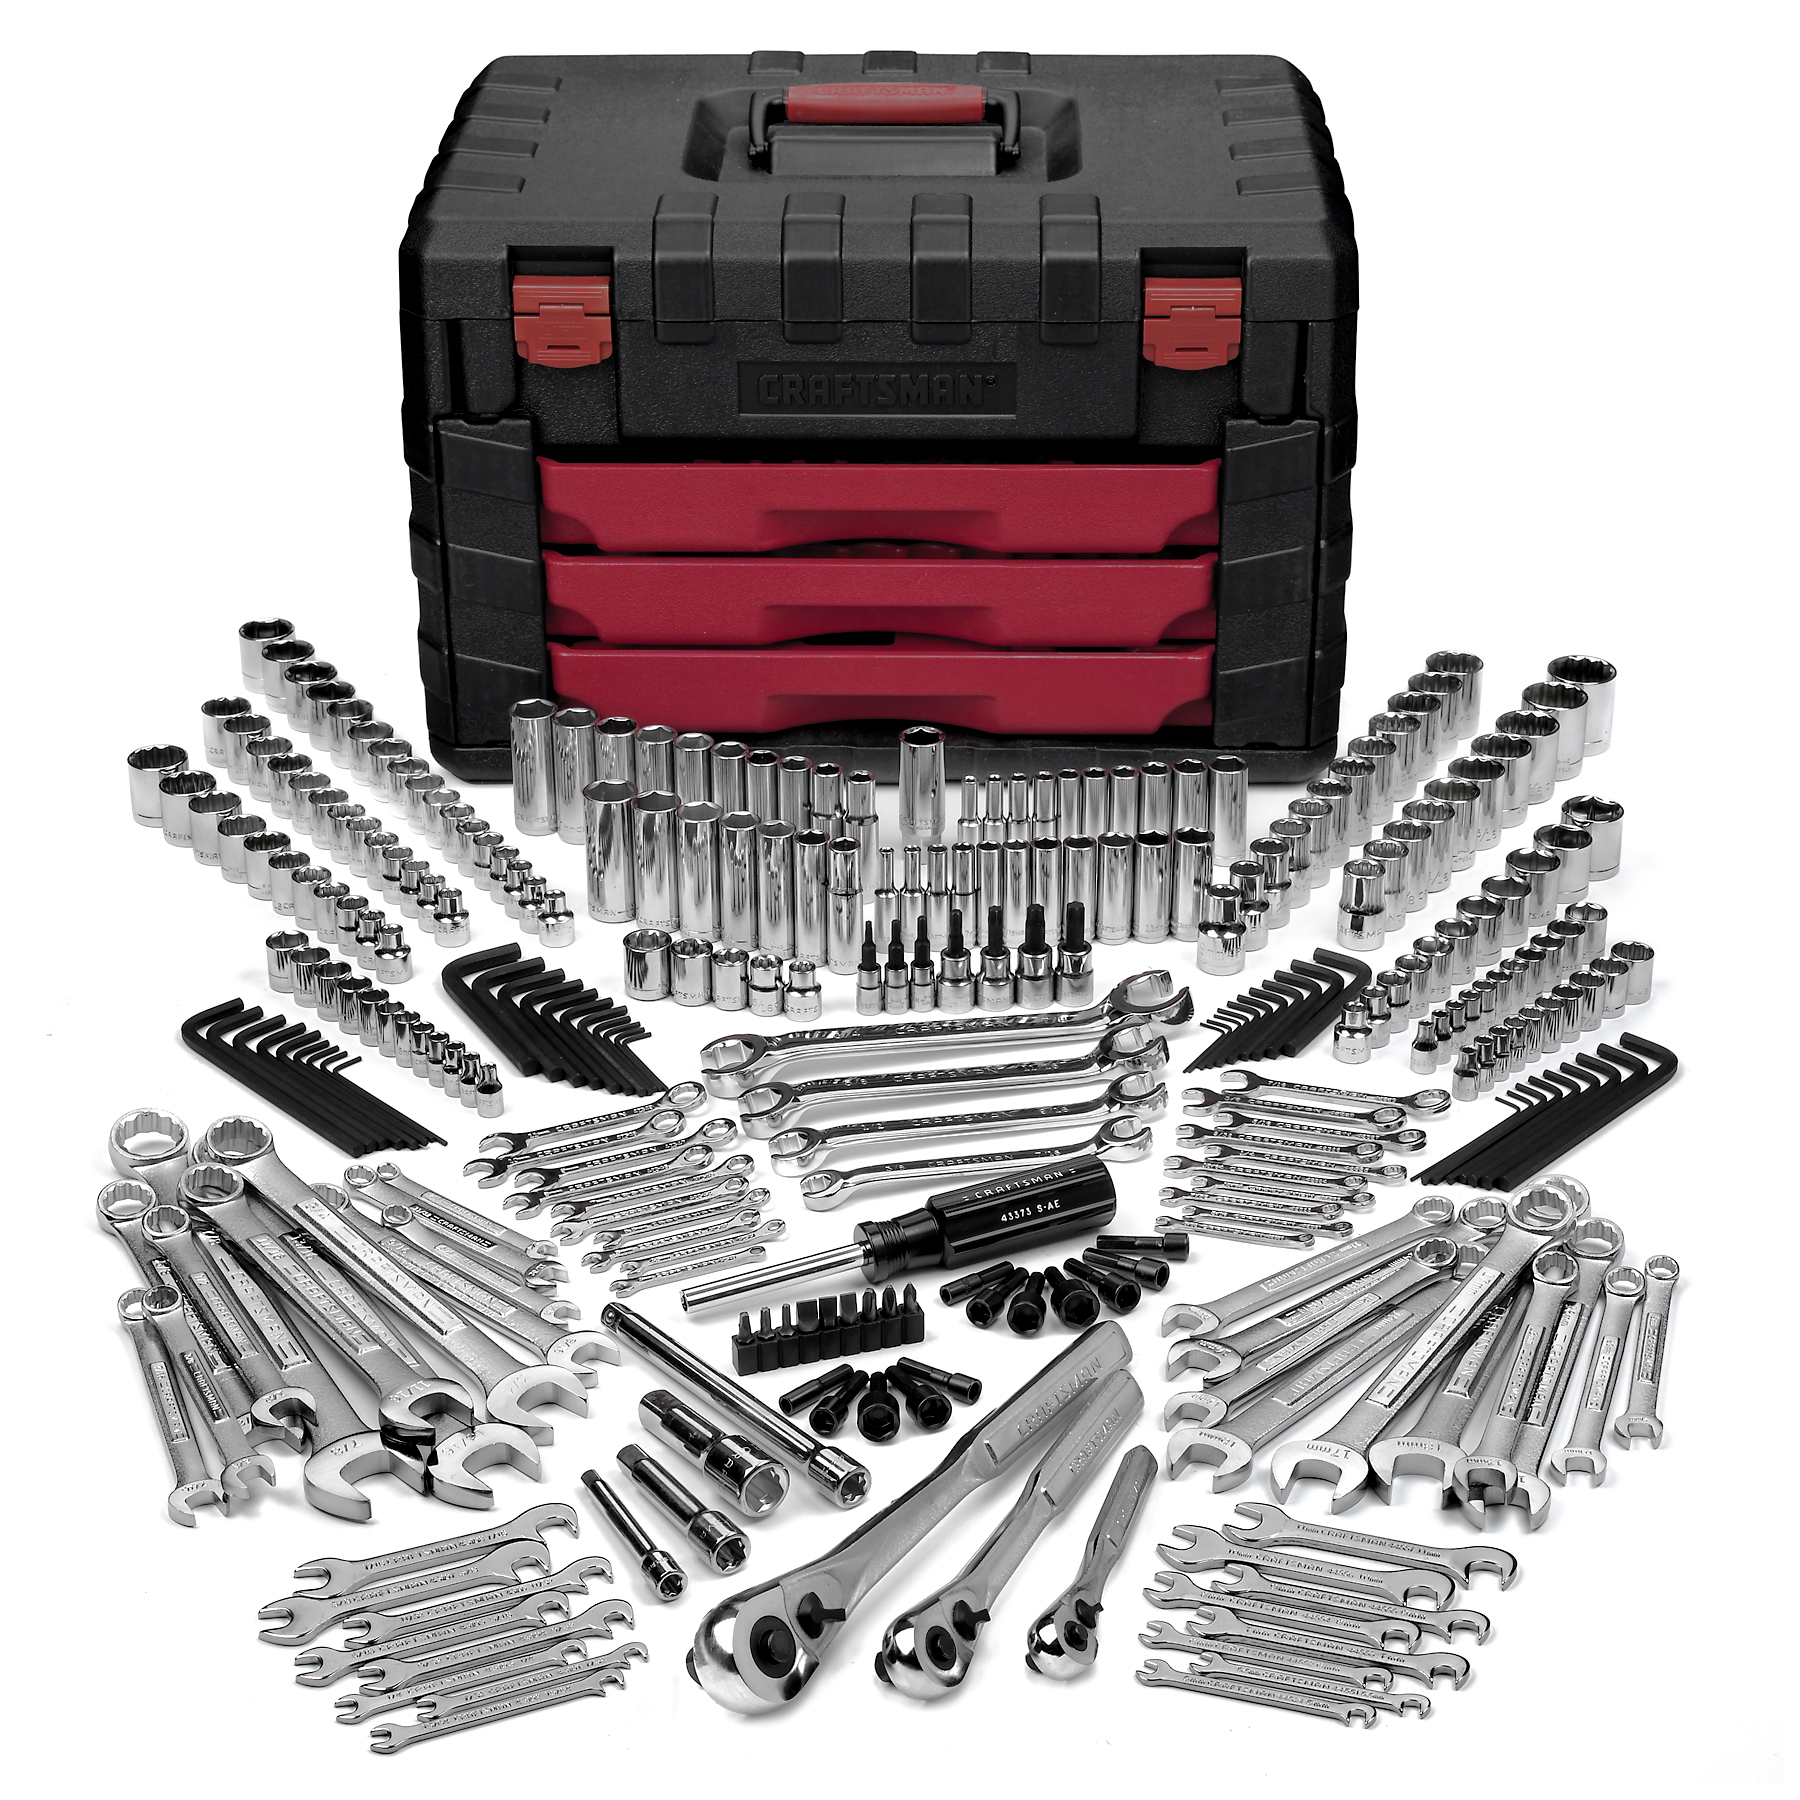 Craftsman 289pc Mechanics Tool Set w/ 3-Drawer Lift Top Chest